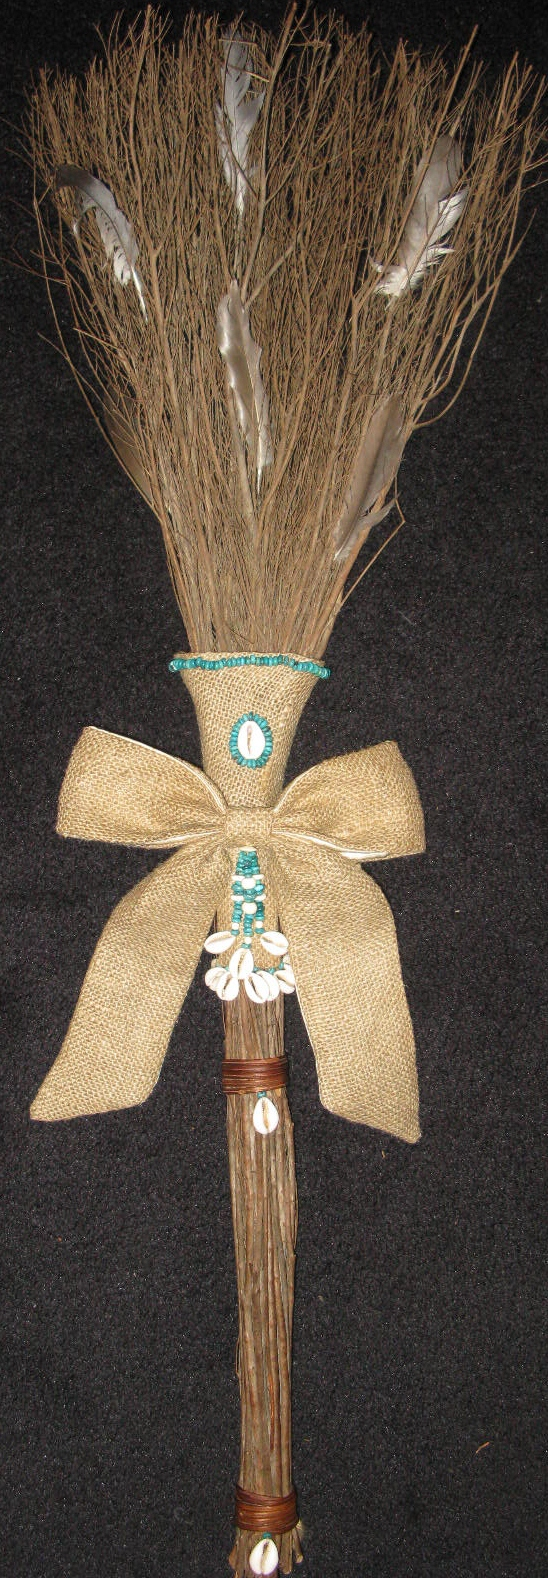 abenas family jumpin brooms wedding brooms Jumpin The Broom came to American slavery from the African tradition of jumping sticks This tradition signifies leaving behind or sweeping away past